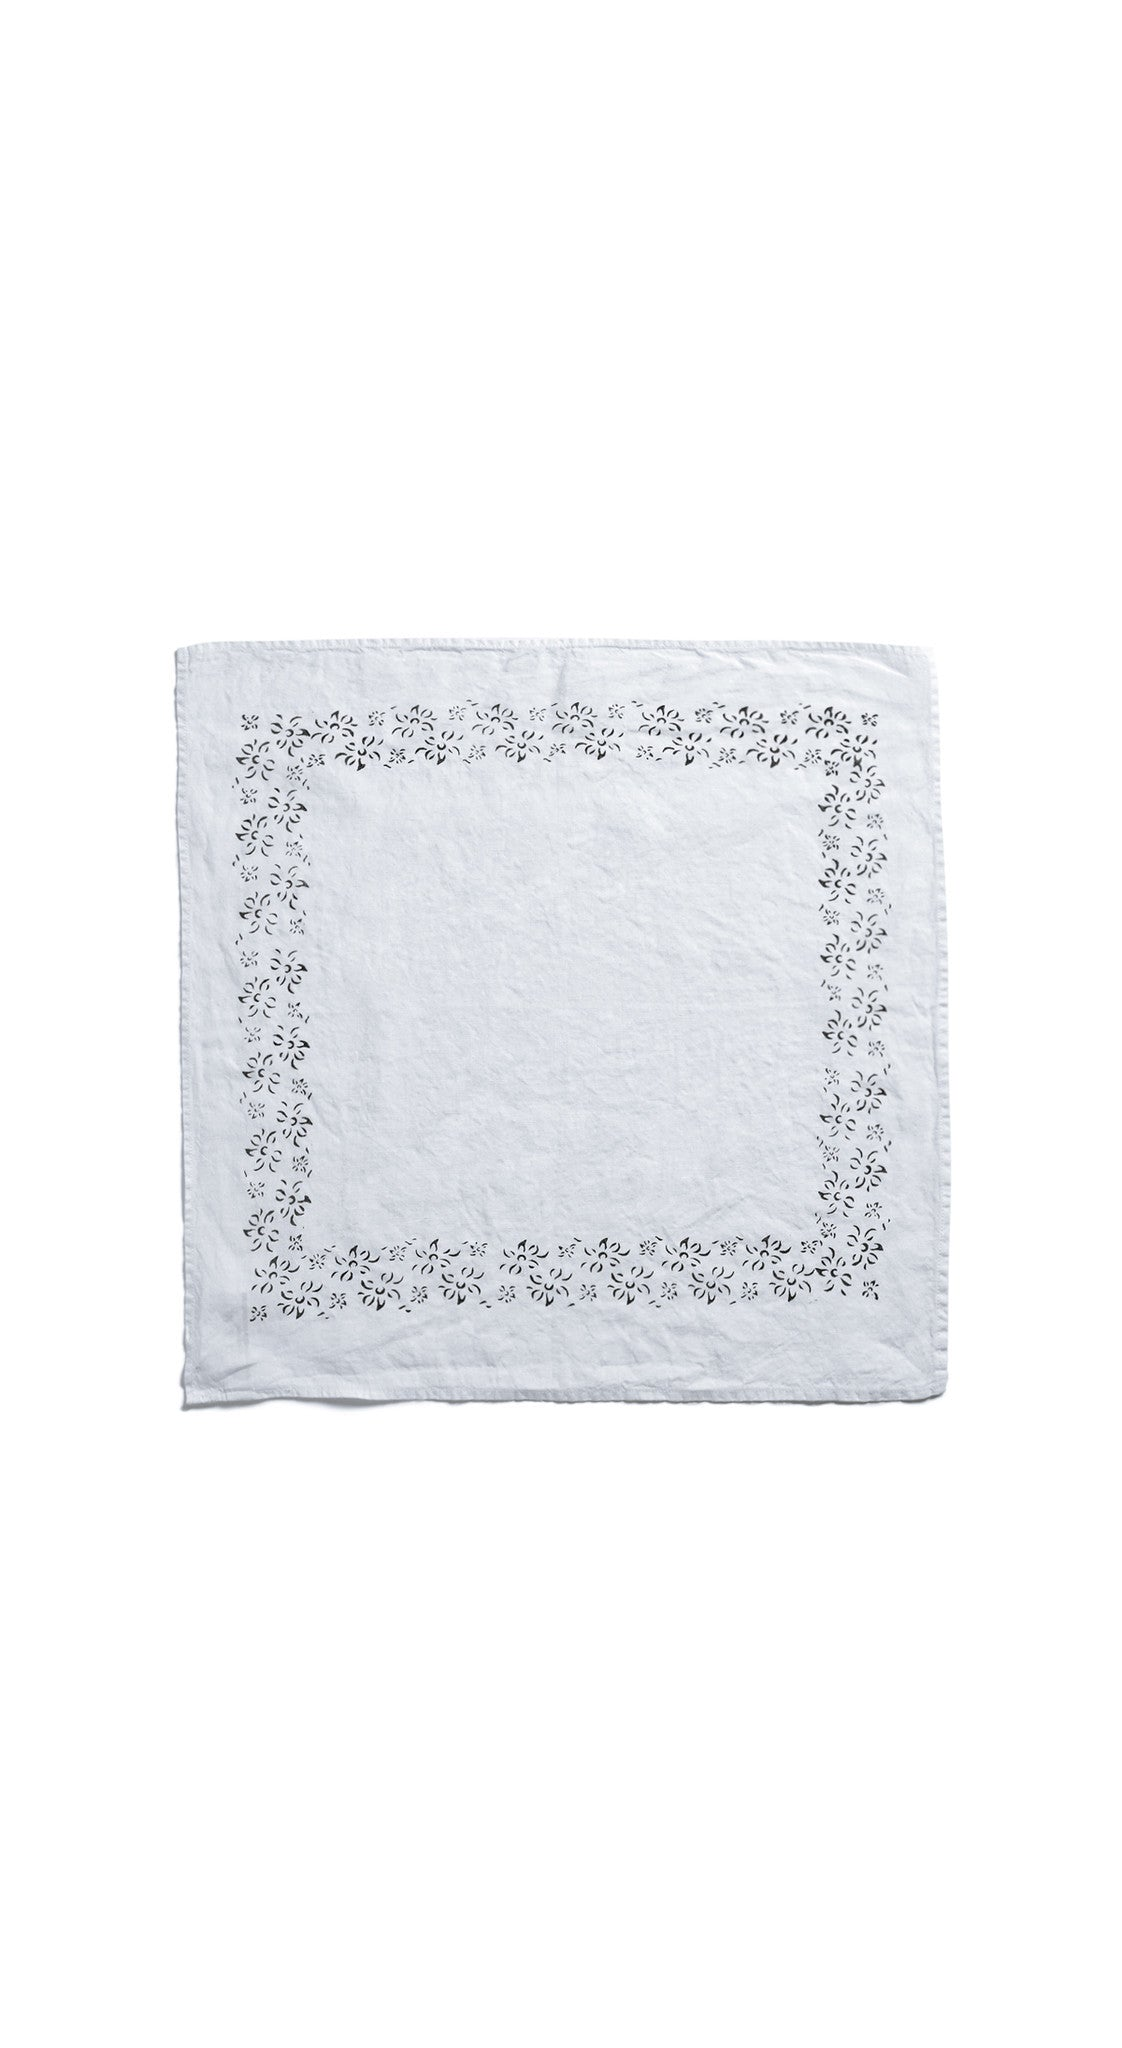 Bernadette's Framed Flower Linen Napkin in Avocado Green